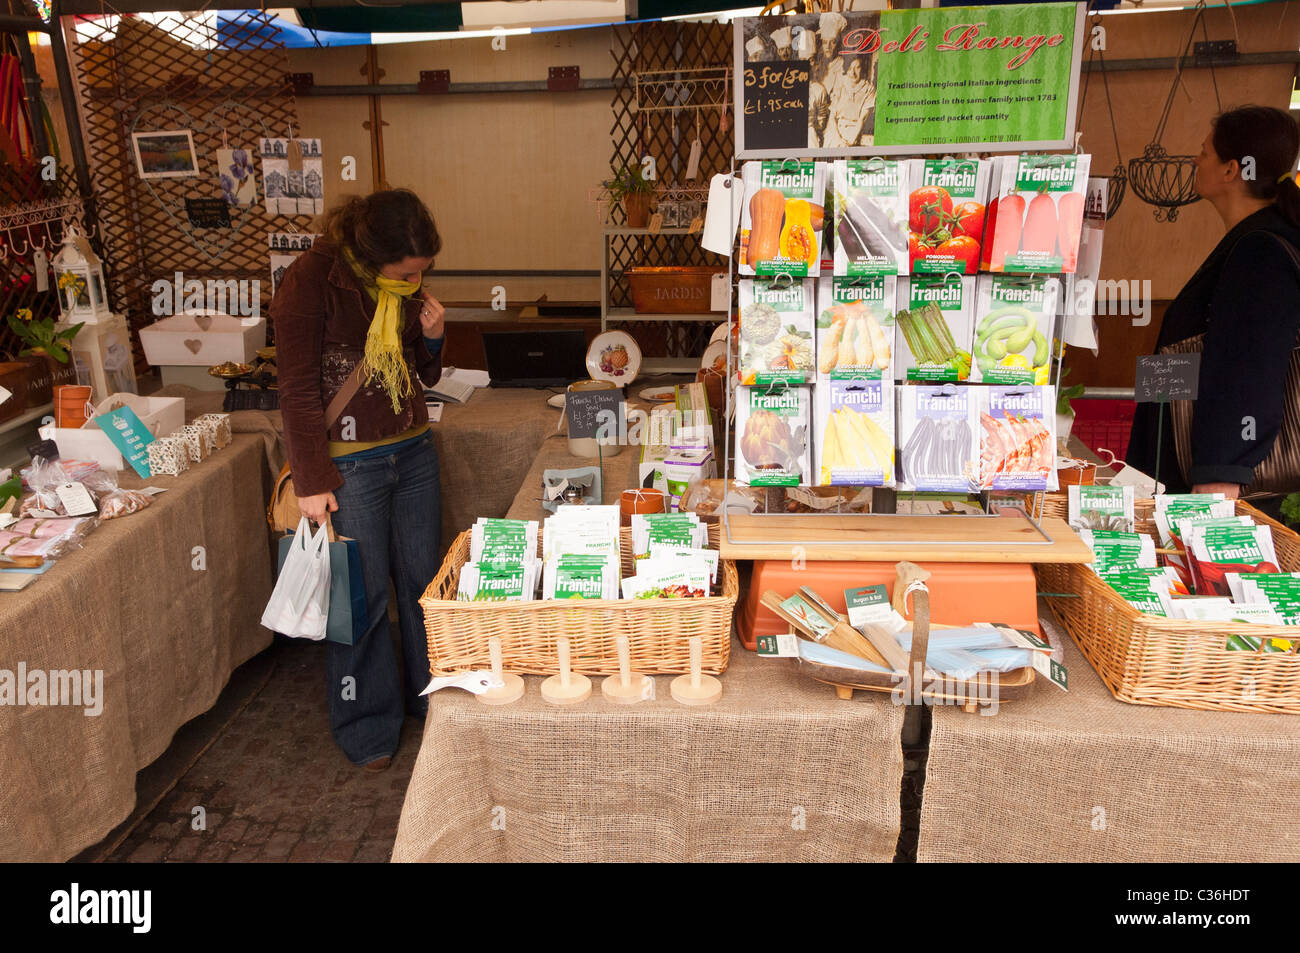 stock photo vegetable seeds for sale on a market stall in cambridge england britain uk